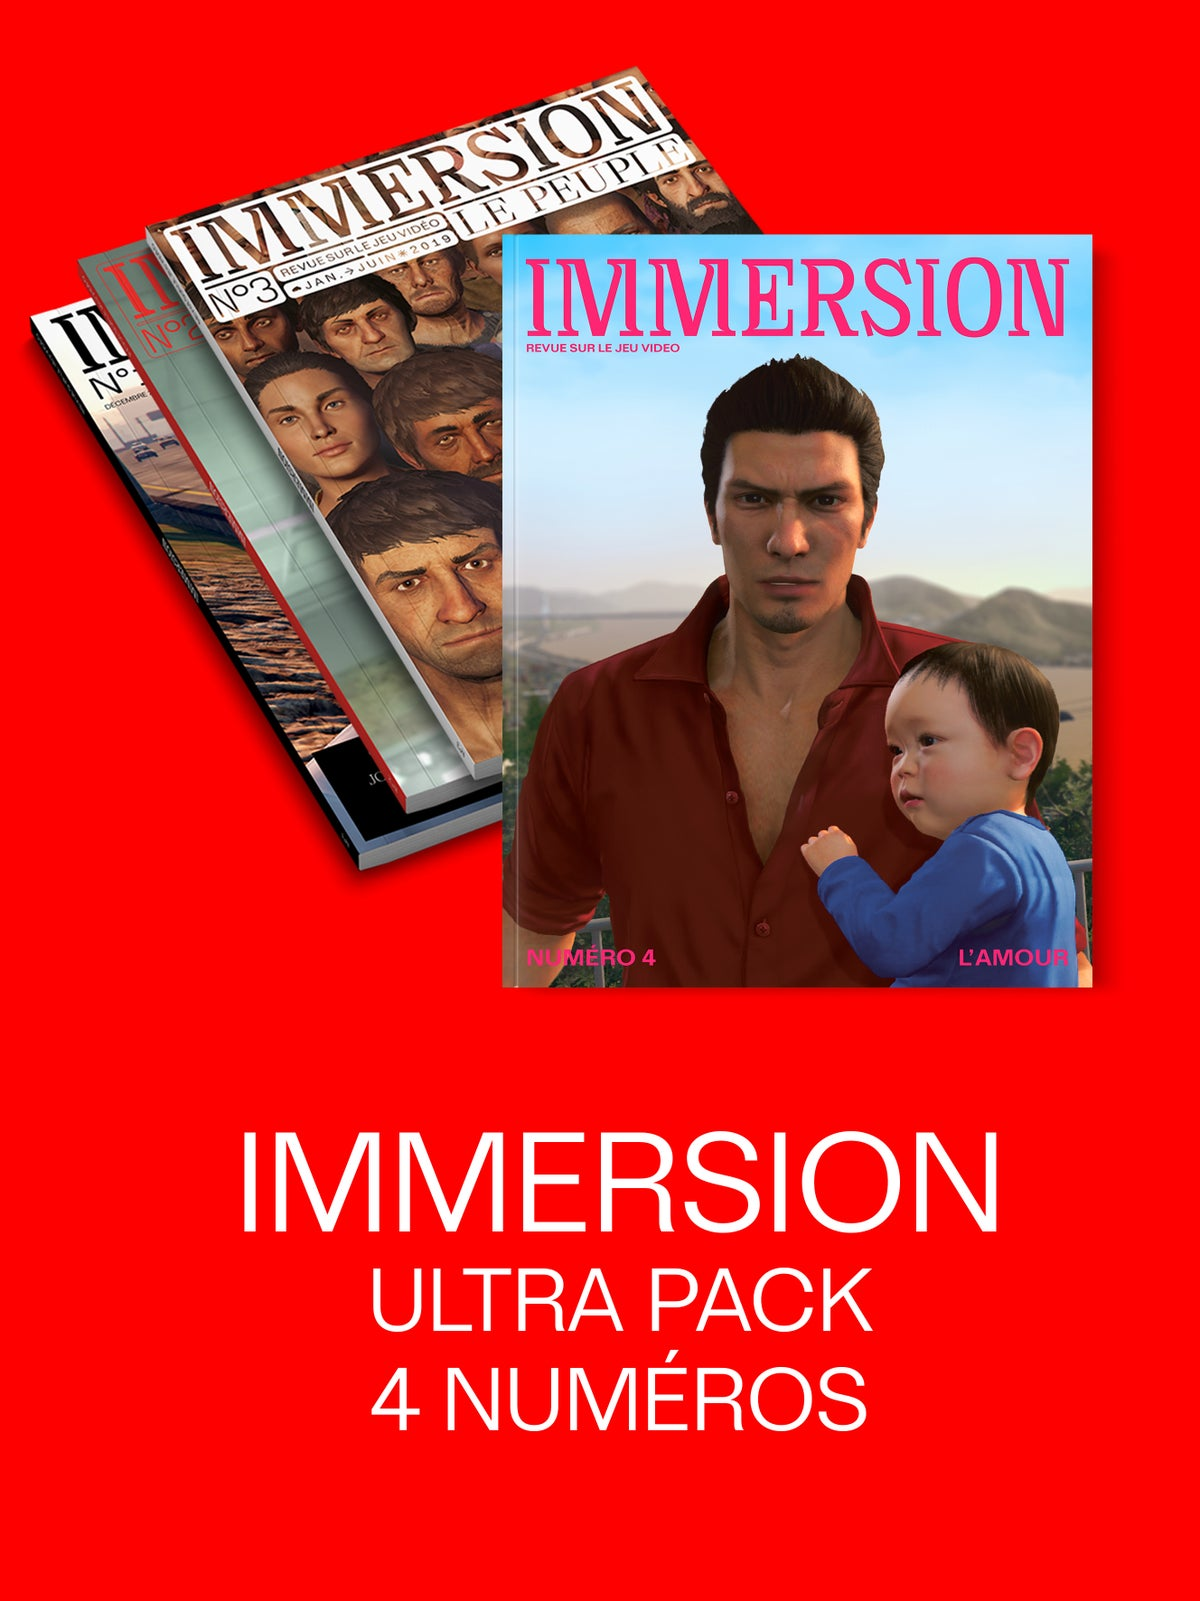 Image of IMMERSION ULTRAPACK — 4 numéros